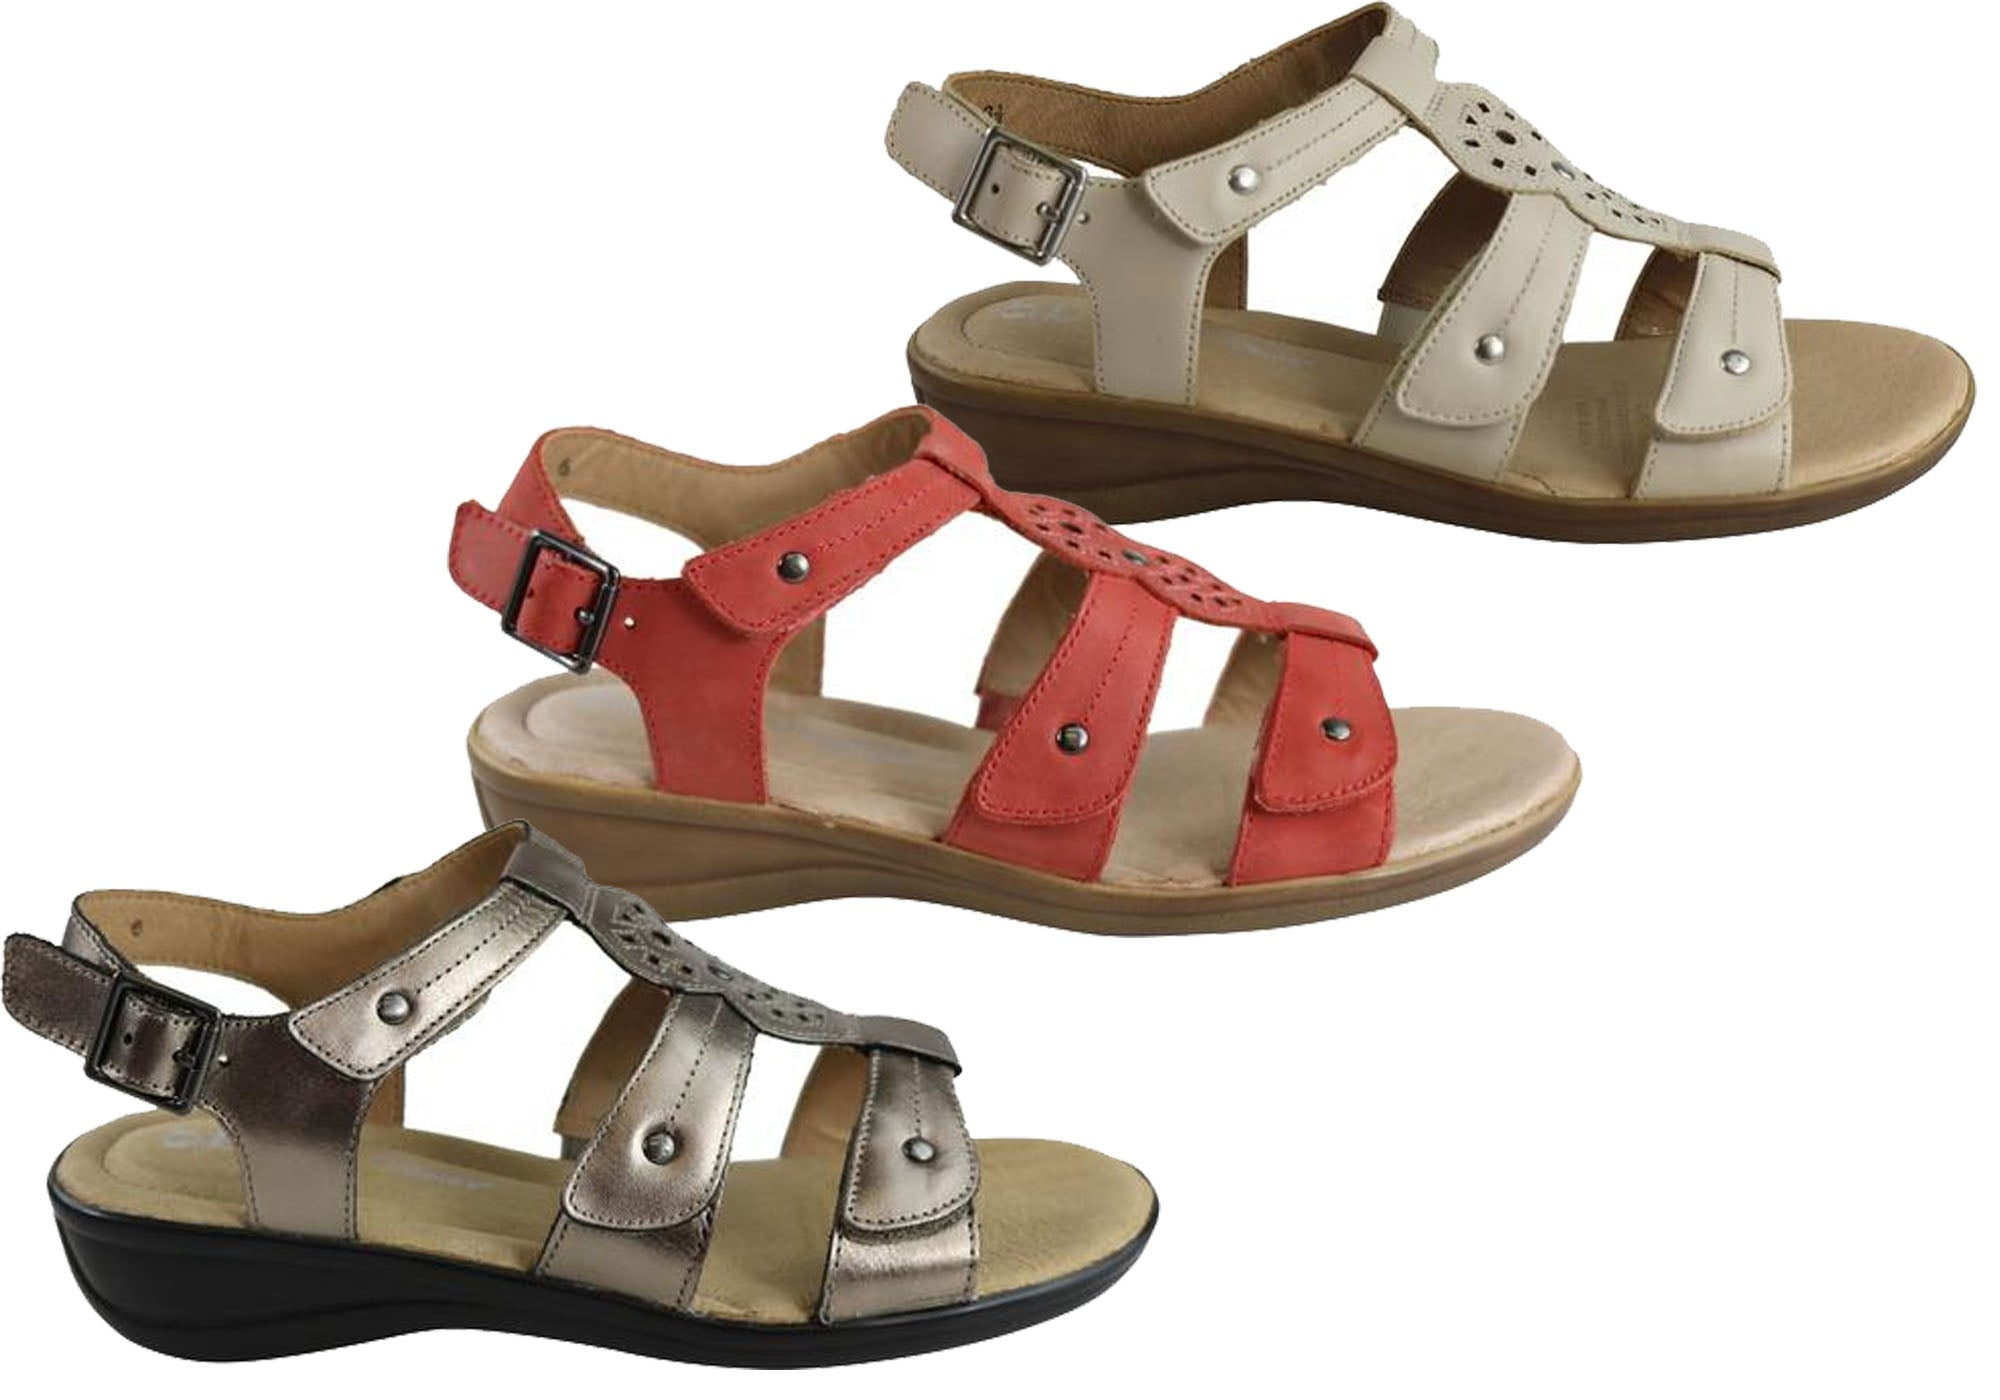 Details about NEW HUSH PUPPIES CARMIN WOMENS COMFORTABLE LEATHER ADJUSTABLE FLAT SANDALS